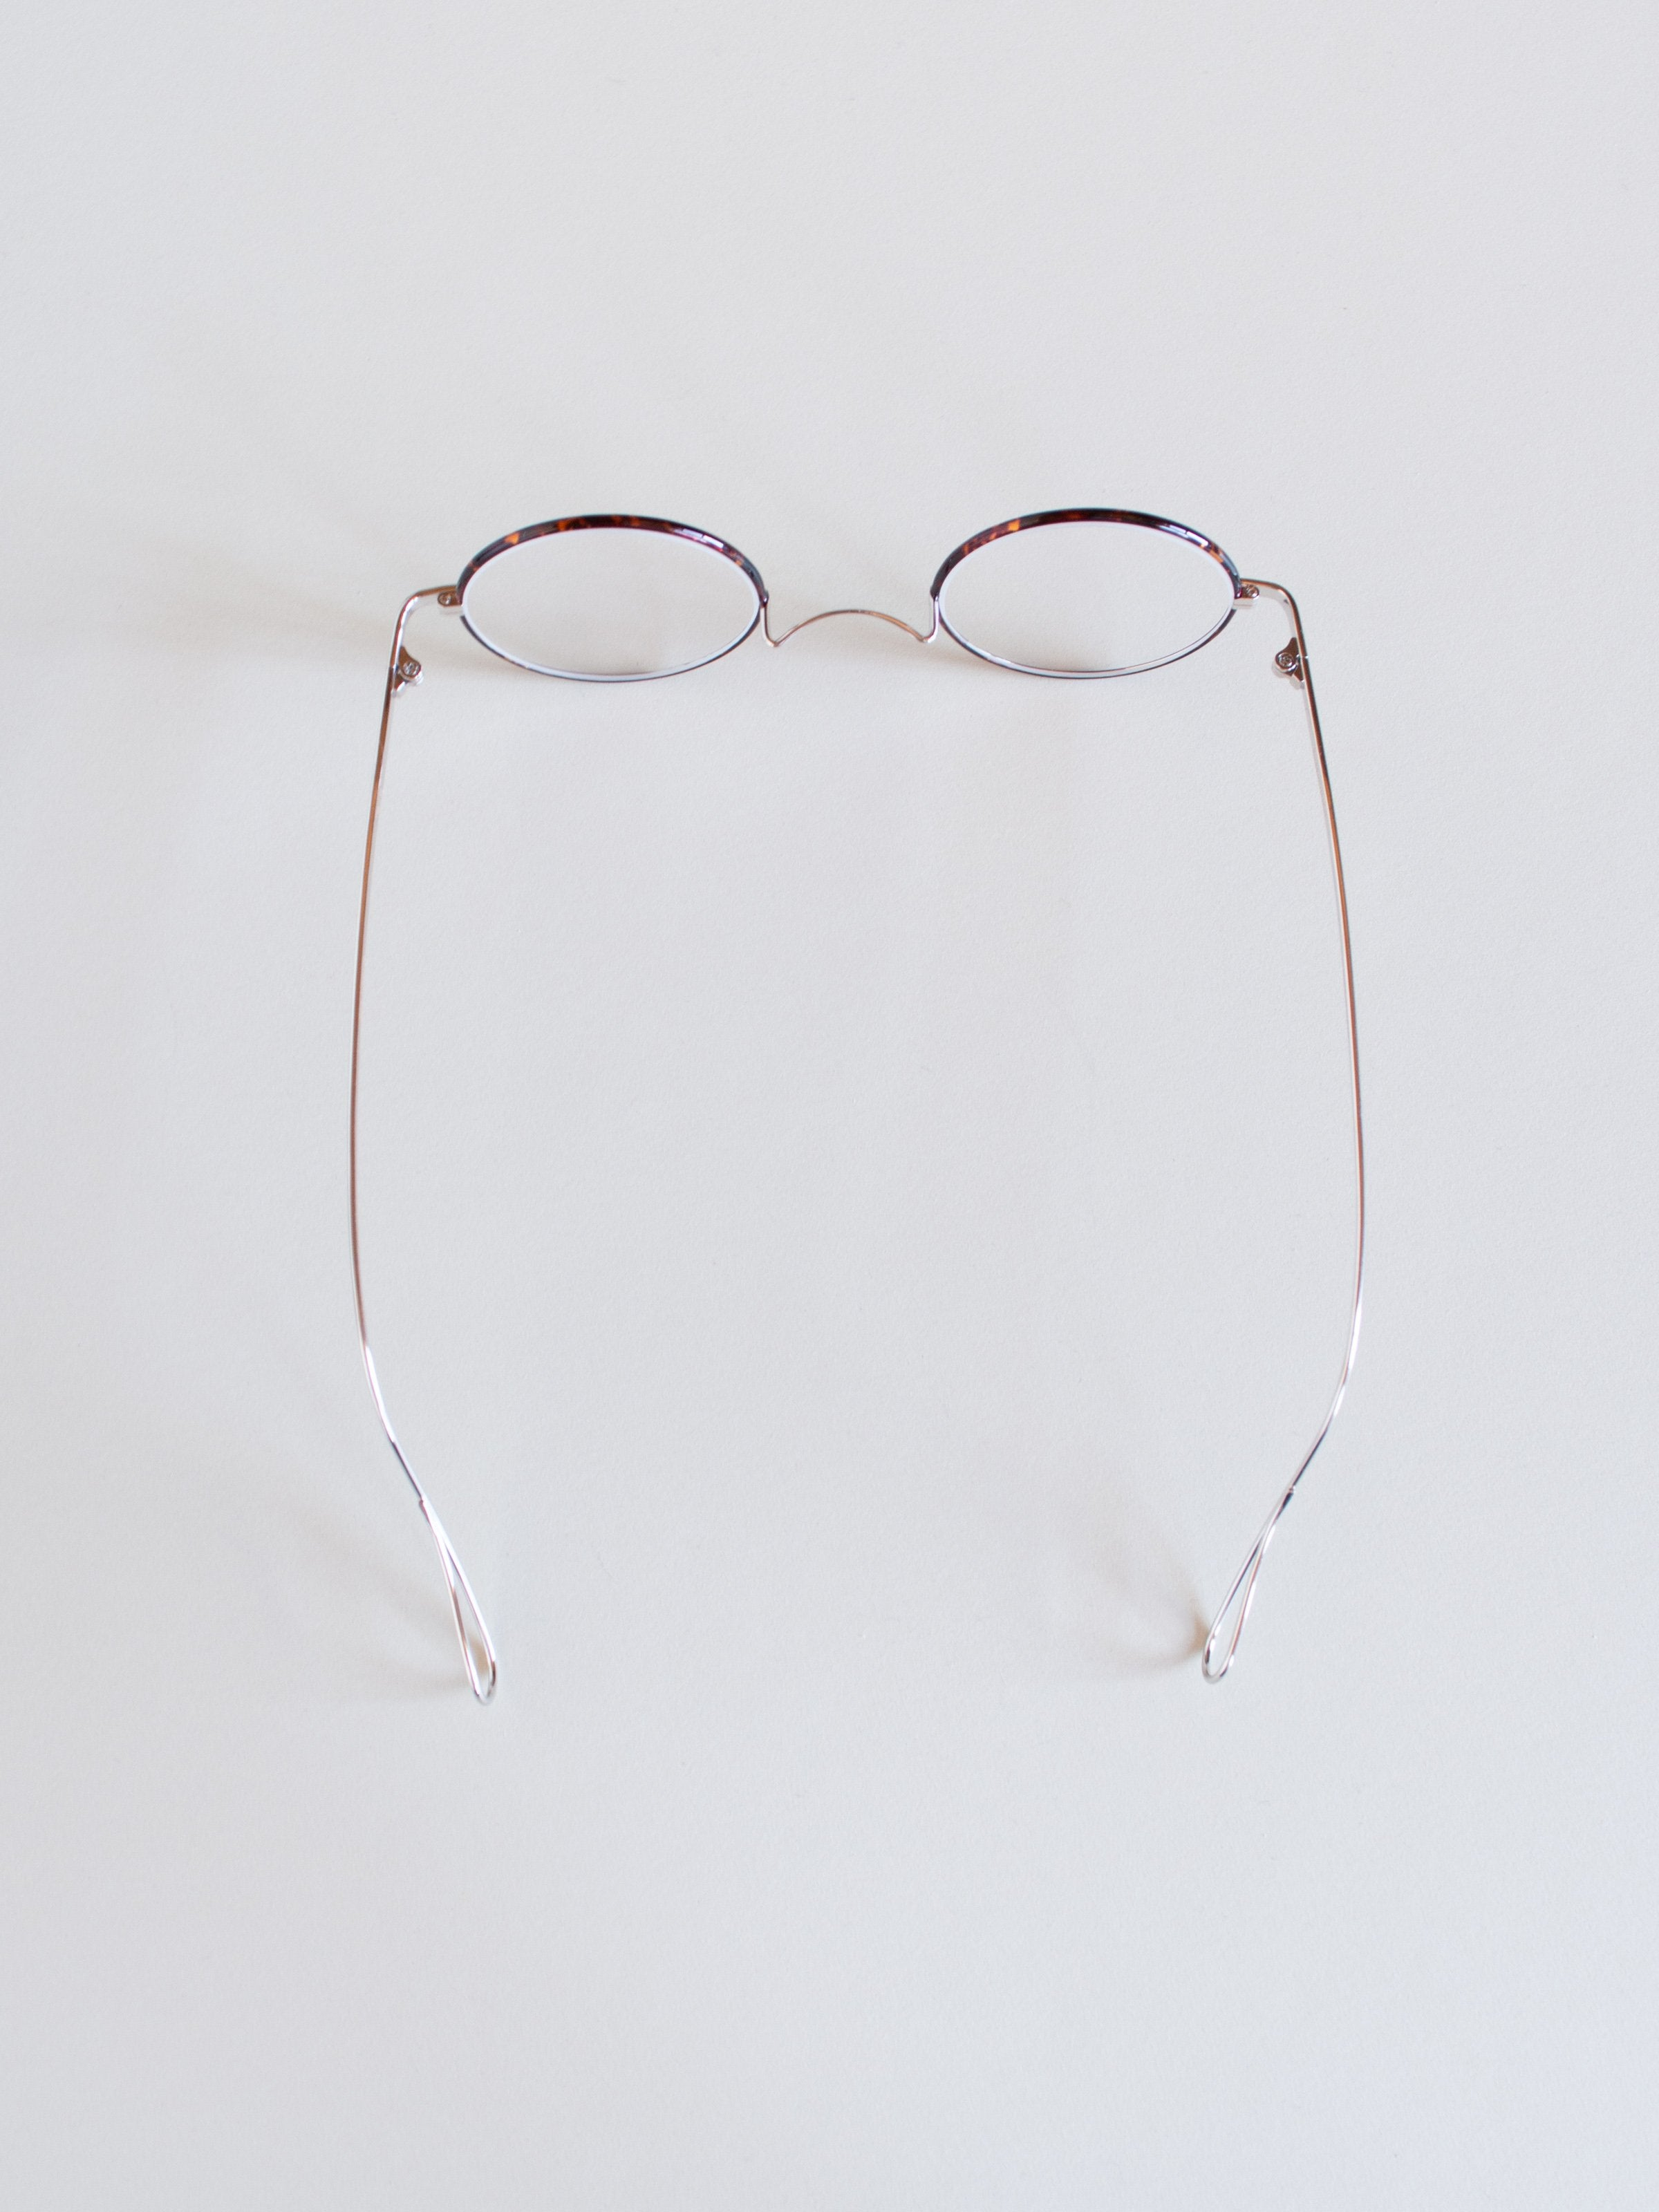 Namu Shop - Buddy Optical a/n - Silver Enamel